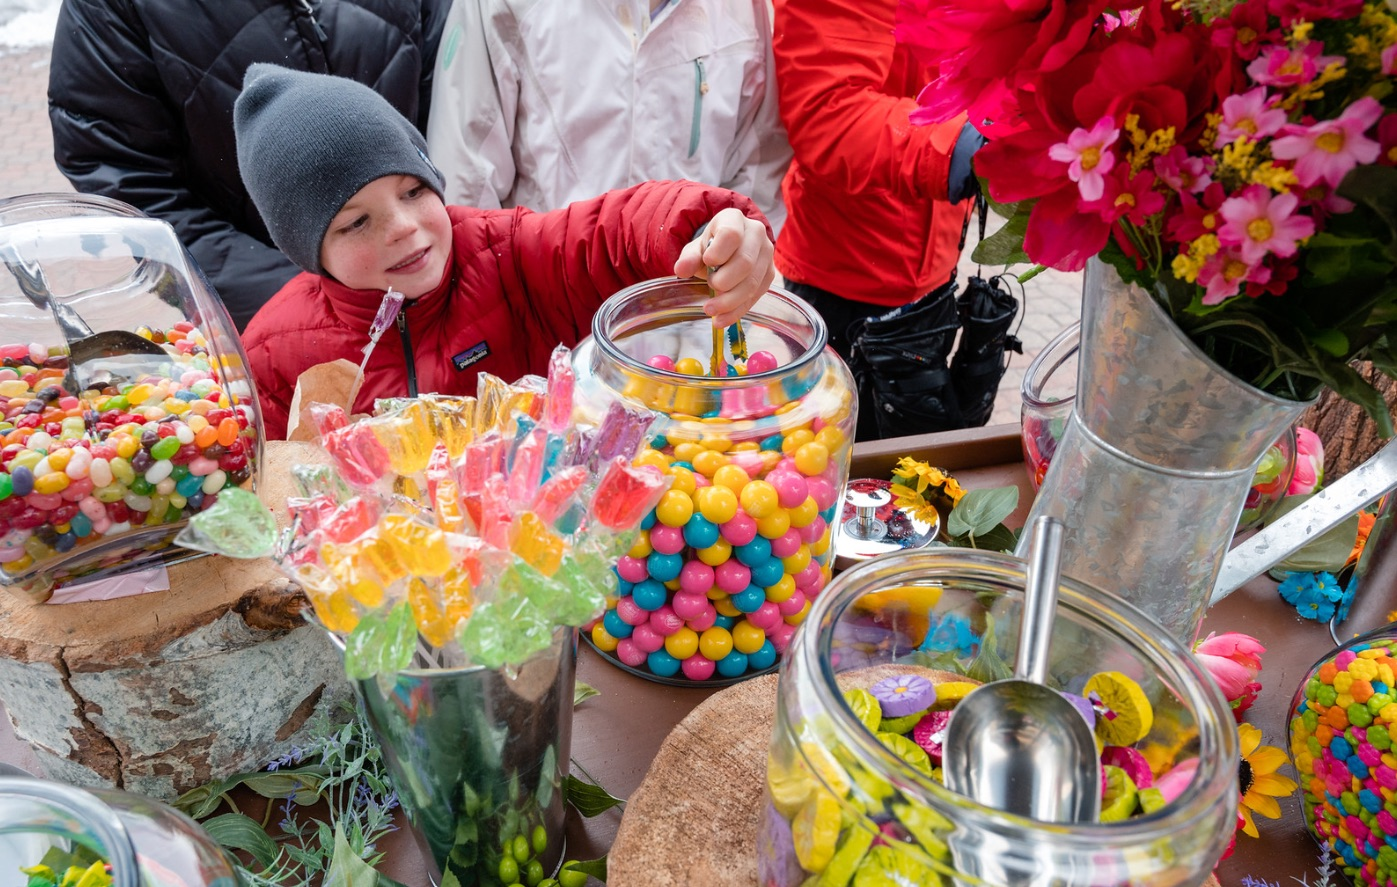 Family apres ski events, live music and more: Tricia's weekend picks 3/22/19